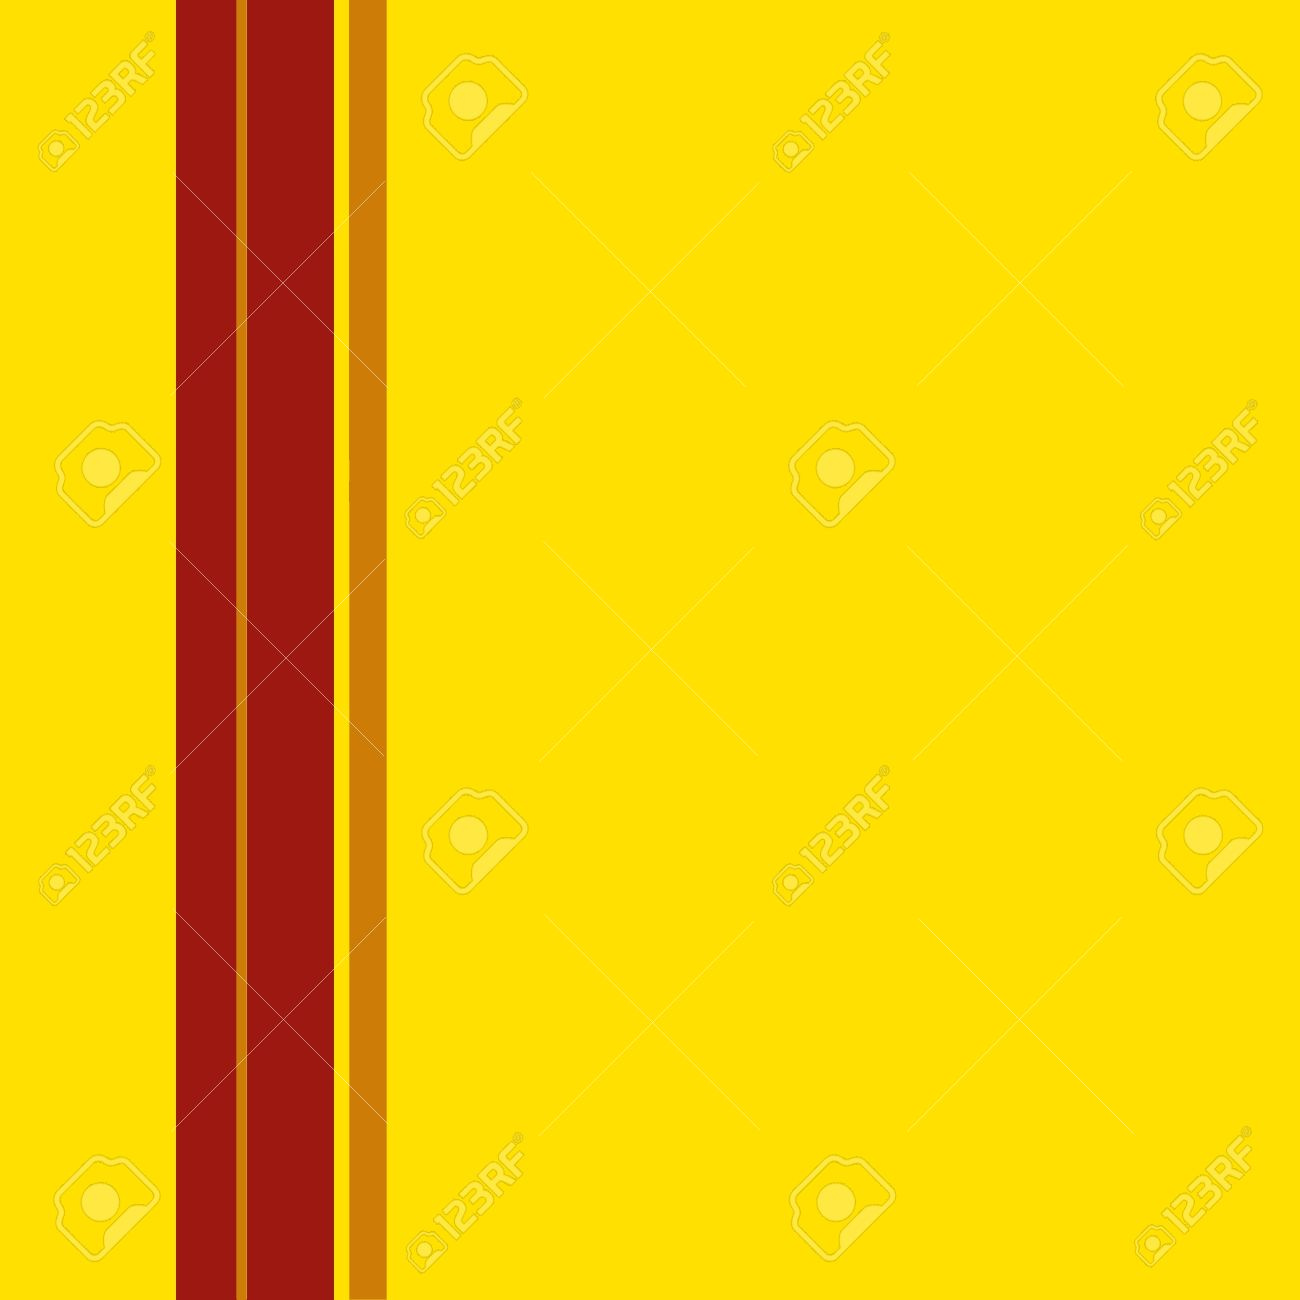 Red Yellow Fashion Retro Stripes Art Design Abstract Background Stock Photo Picture And Royalty Free Image Image 14112121